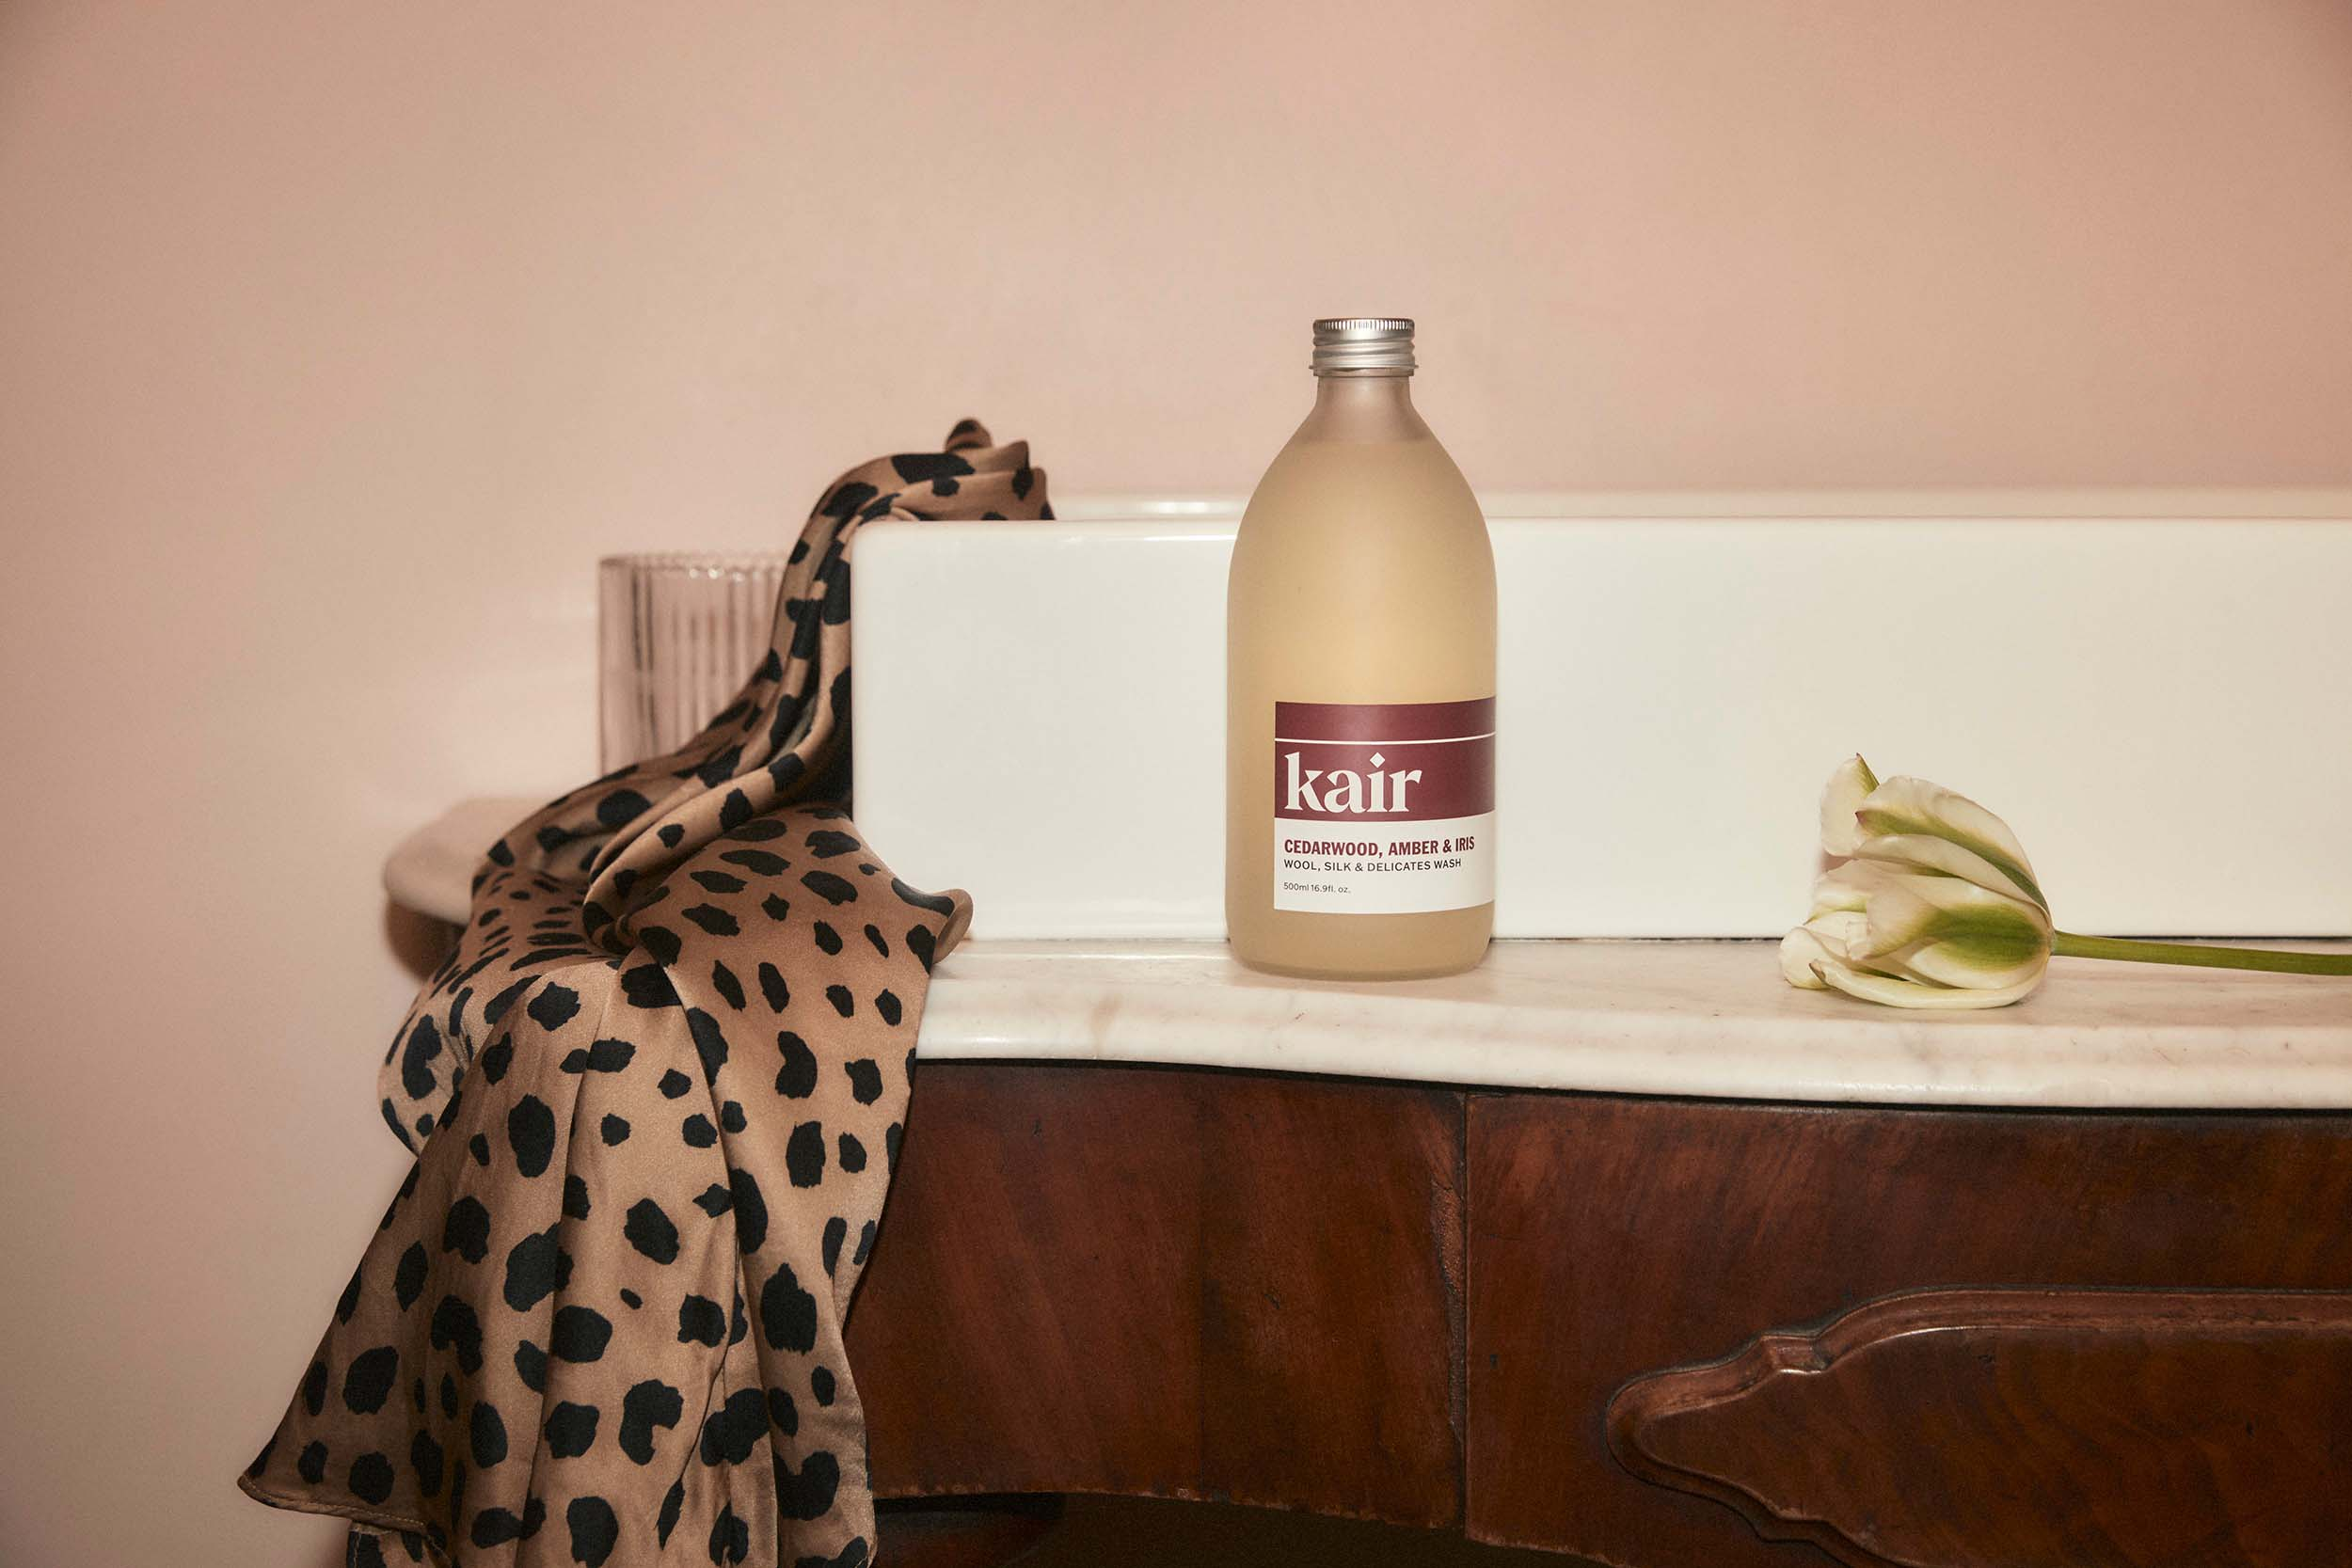 Kair Wool, Silk & Delicates Wash - Cedarwood, Amber & Iris resting on a marble vanity unit next to leopard-print silk fabric and a single rose